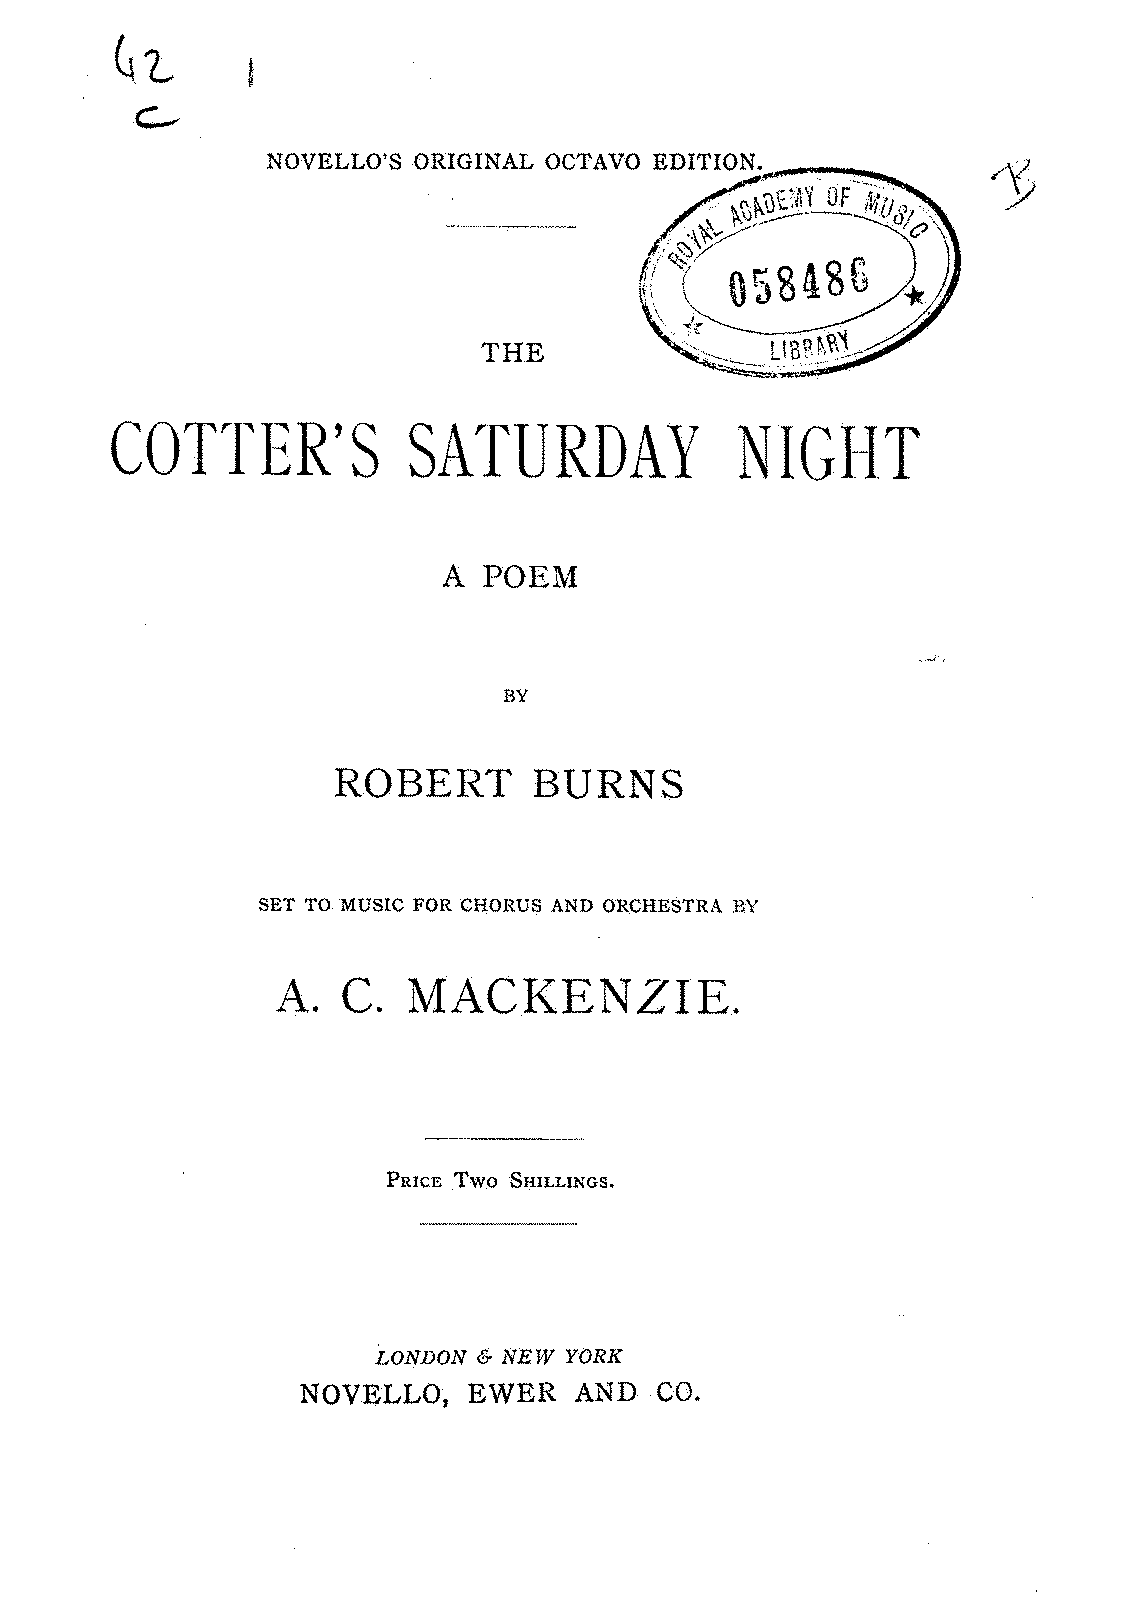 PMLP313021-Mackenzie - The Cotter's Saturday Night - Title and preliminaries.pdf